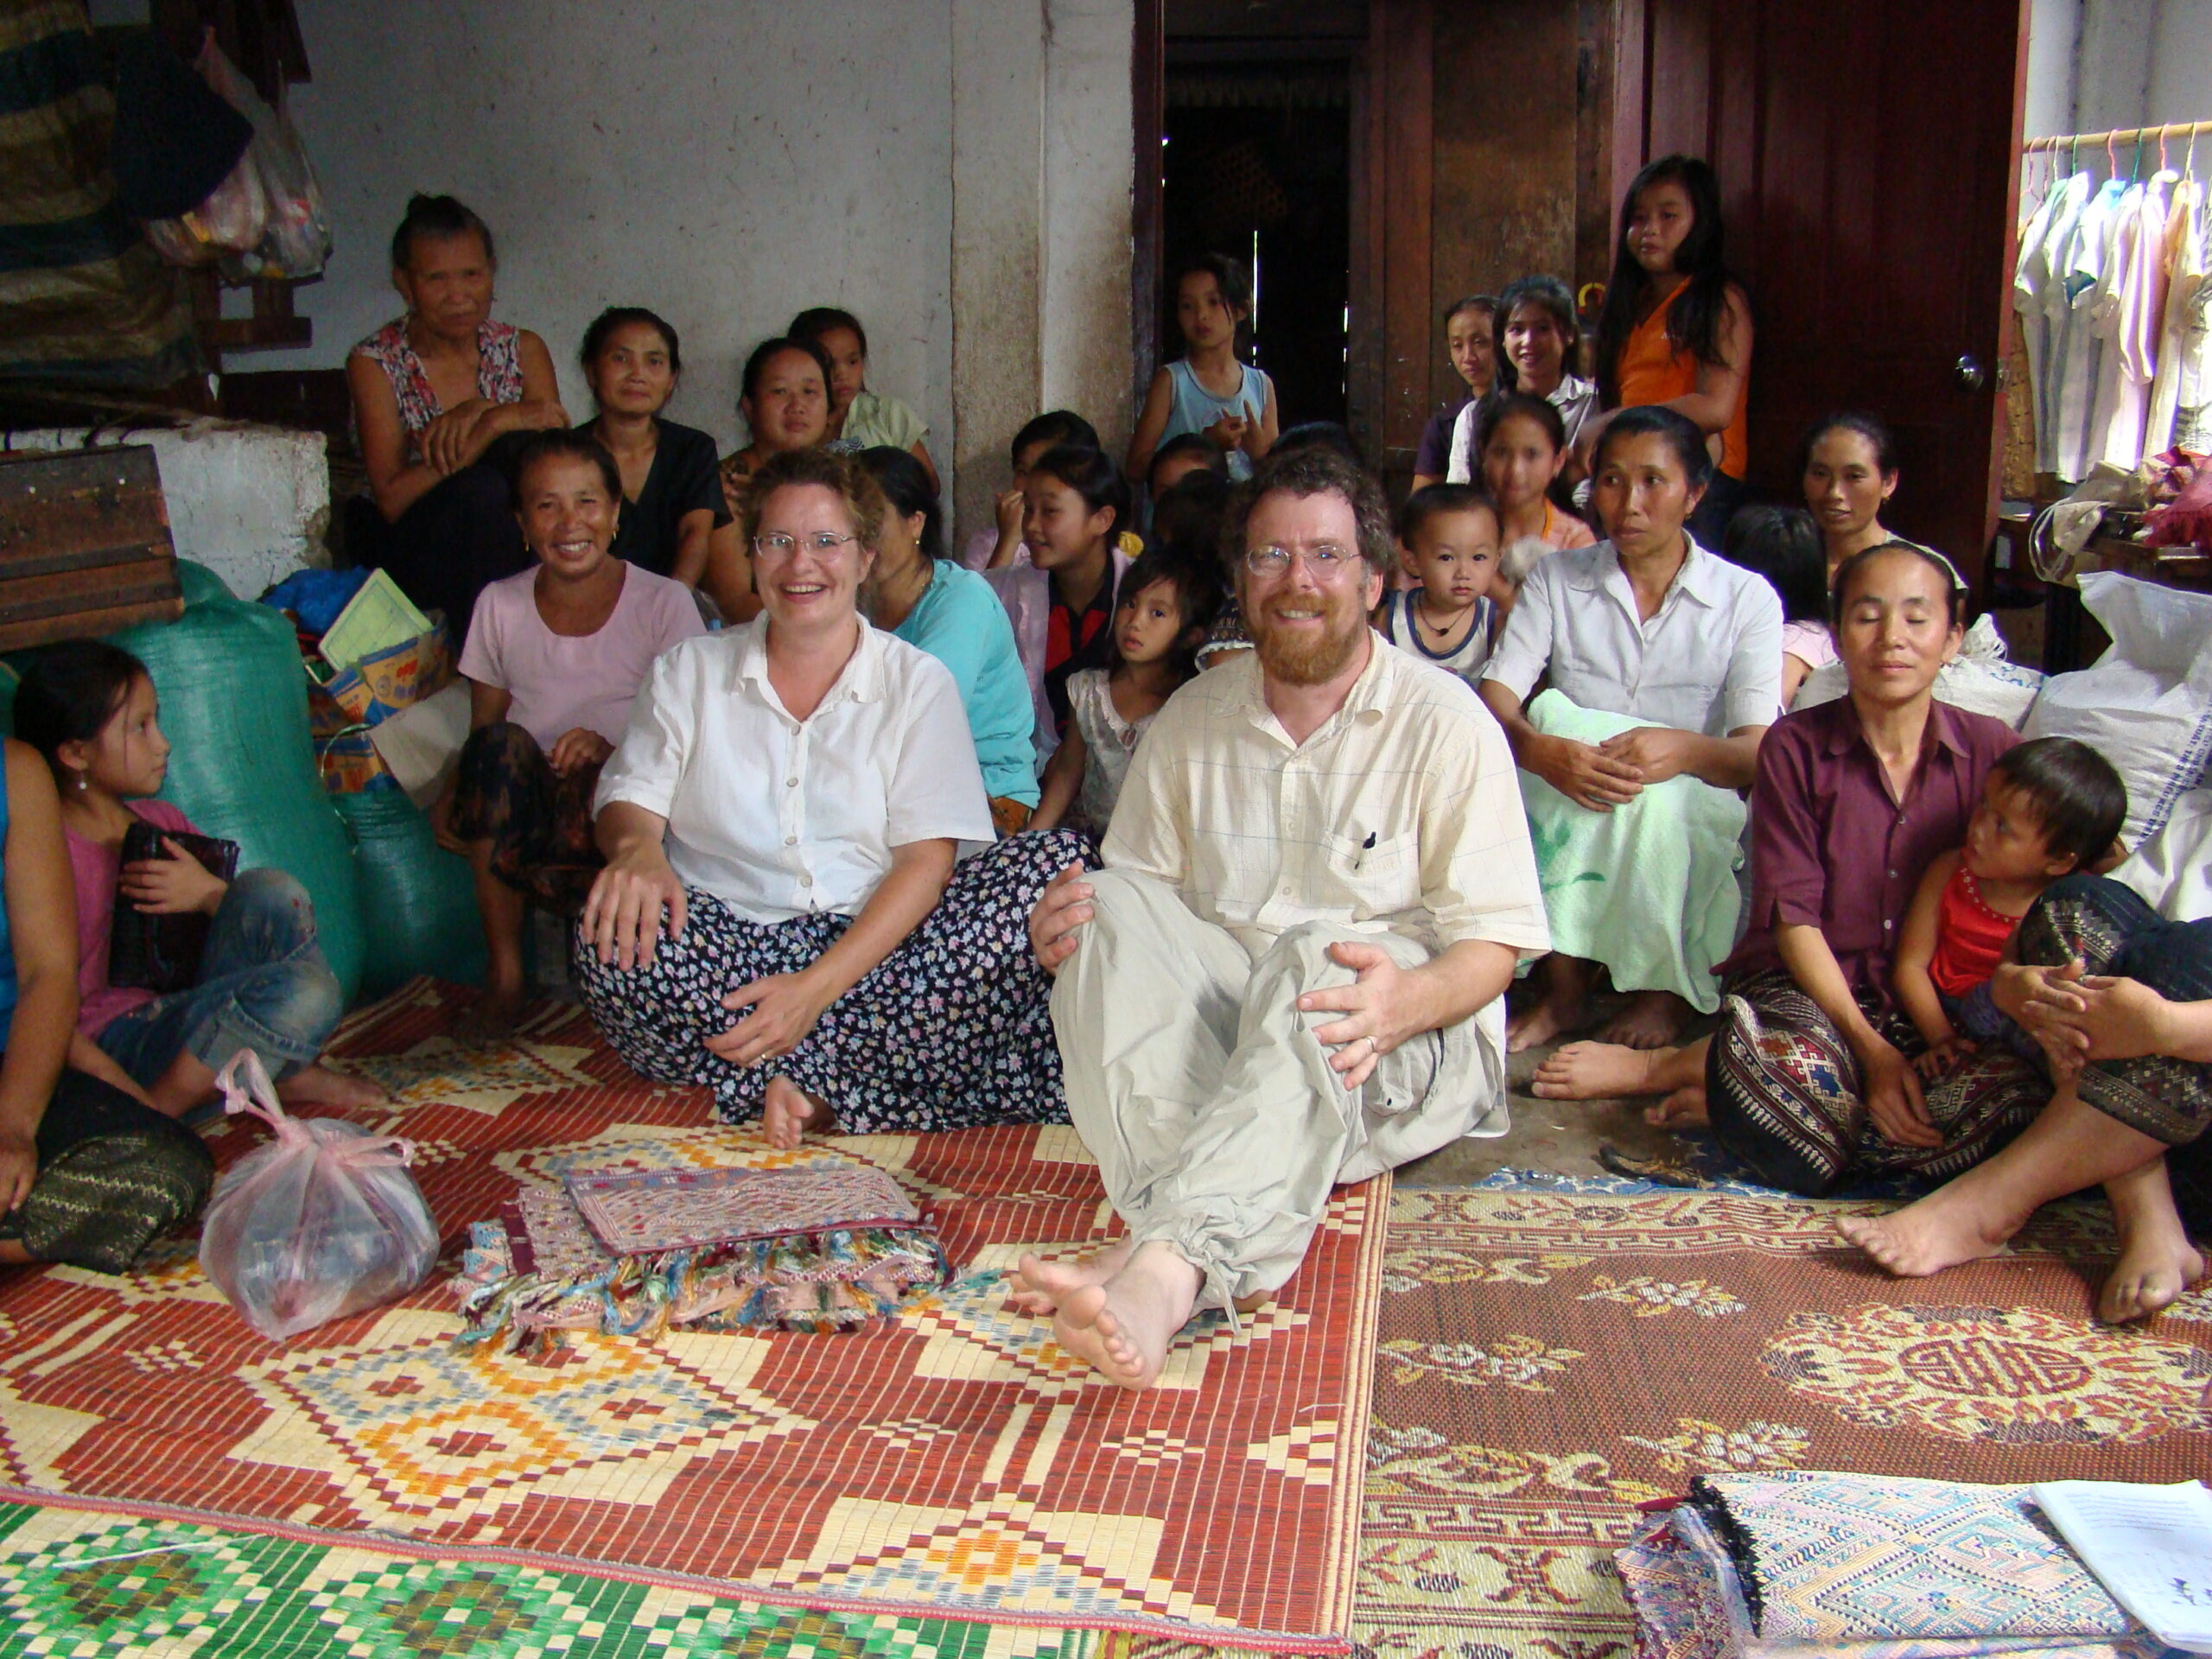 Here we are with the silk artists of the village of Muang Vaen.